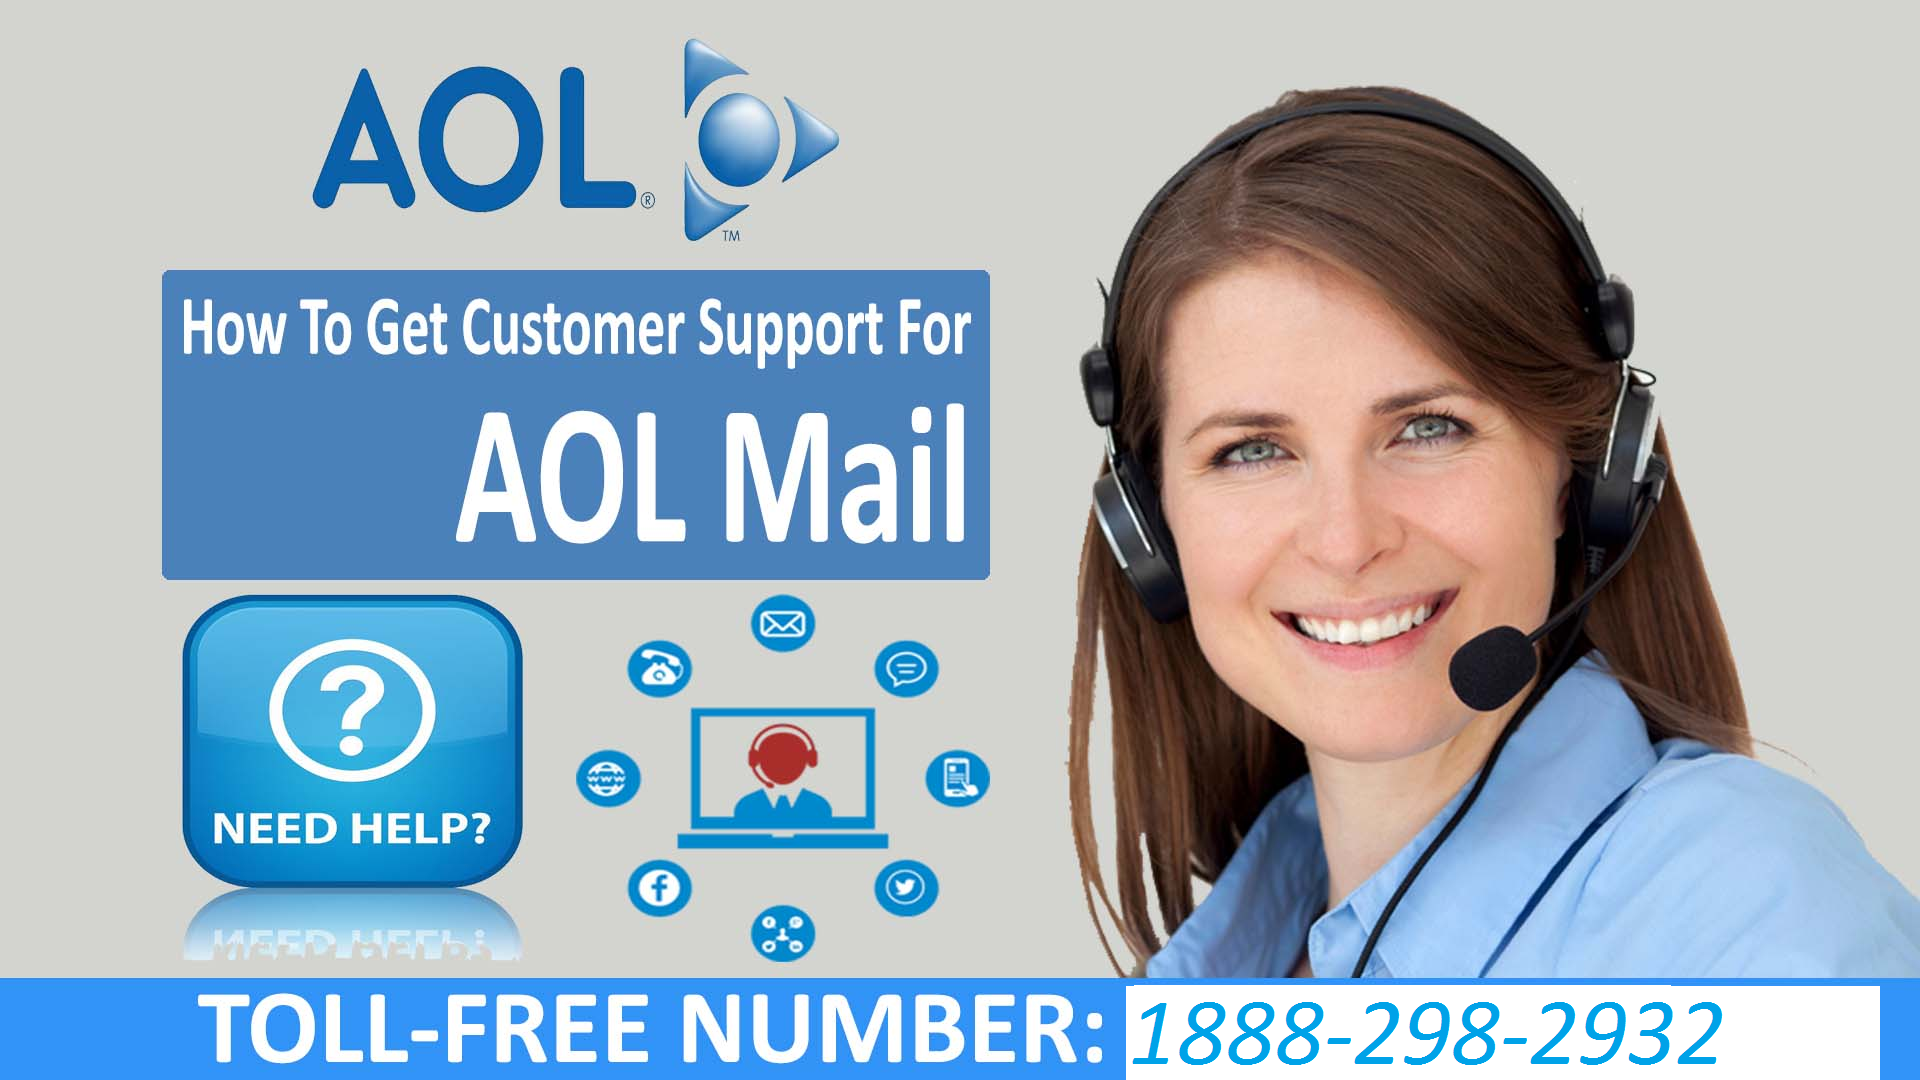 aol customer care number usa 1888-298-2932 toll free number | email